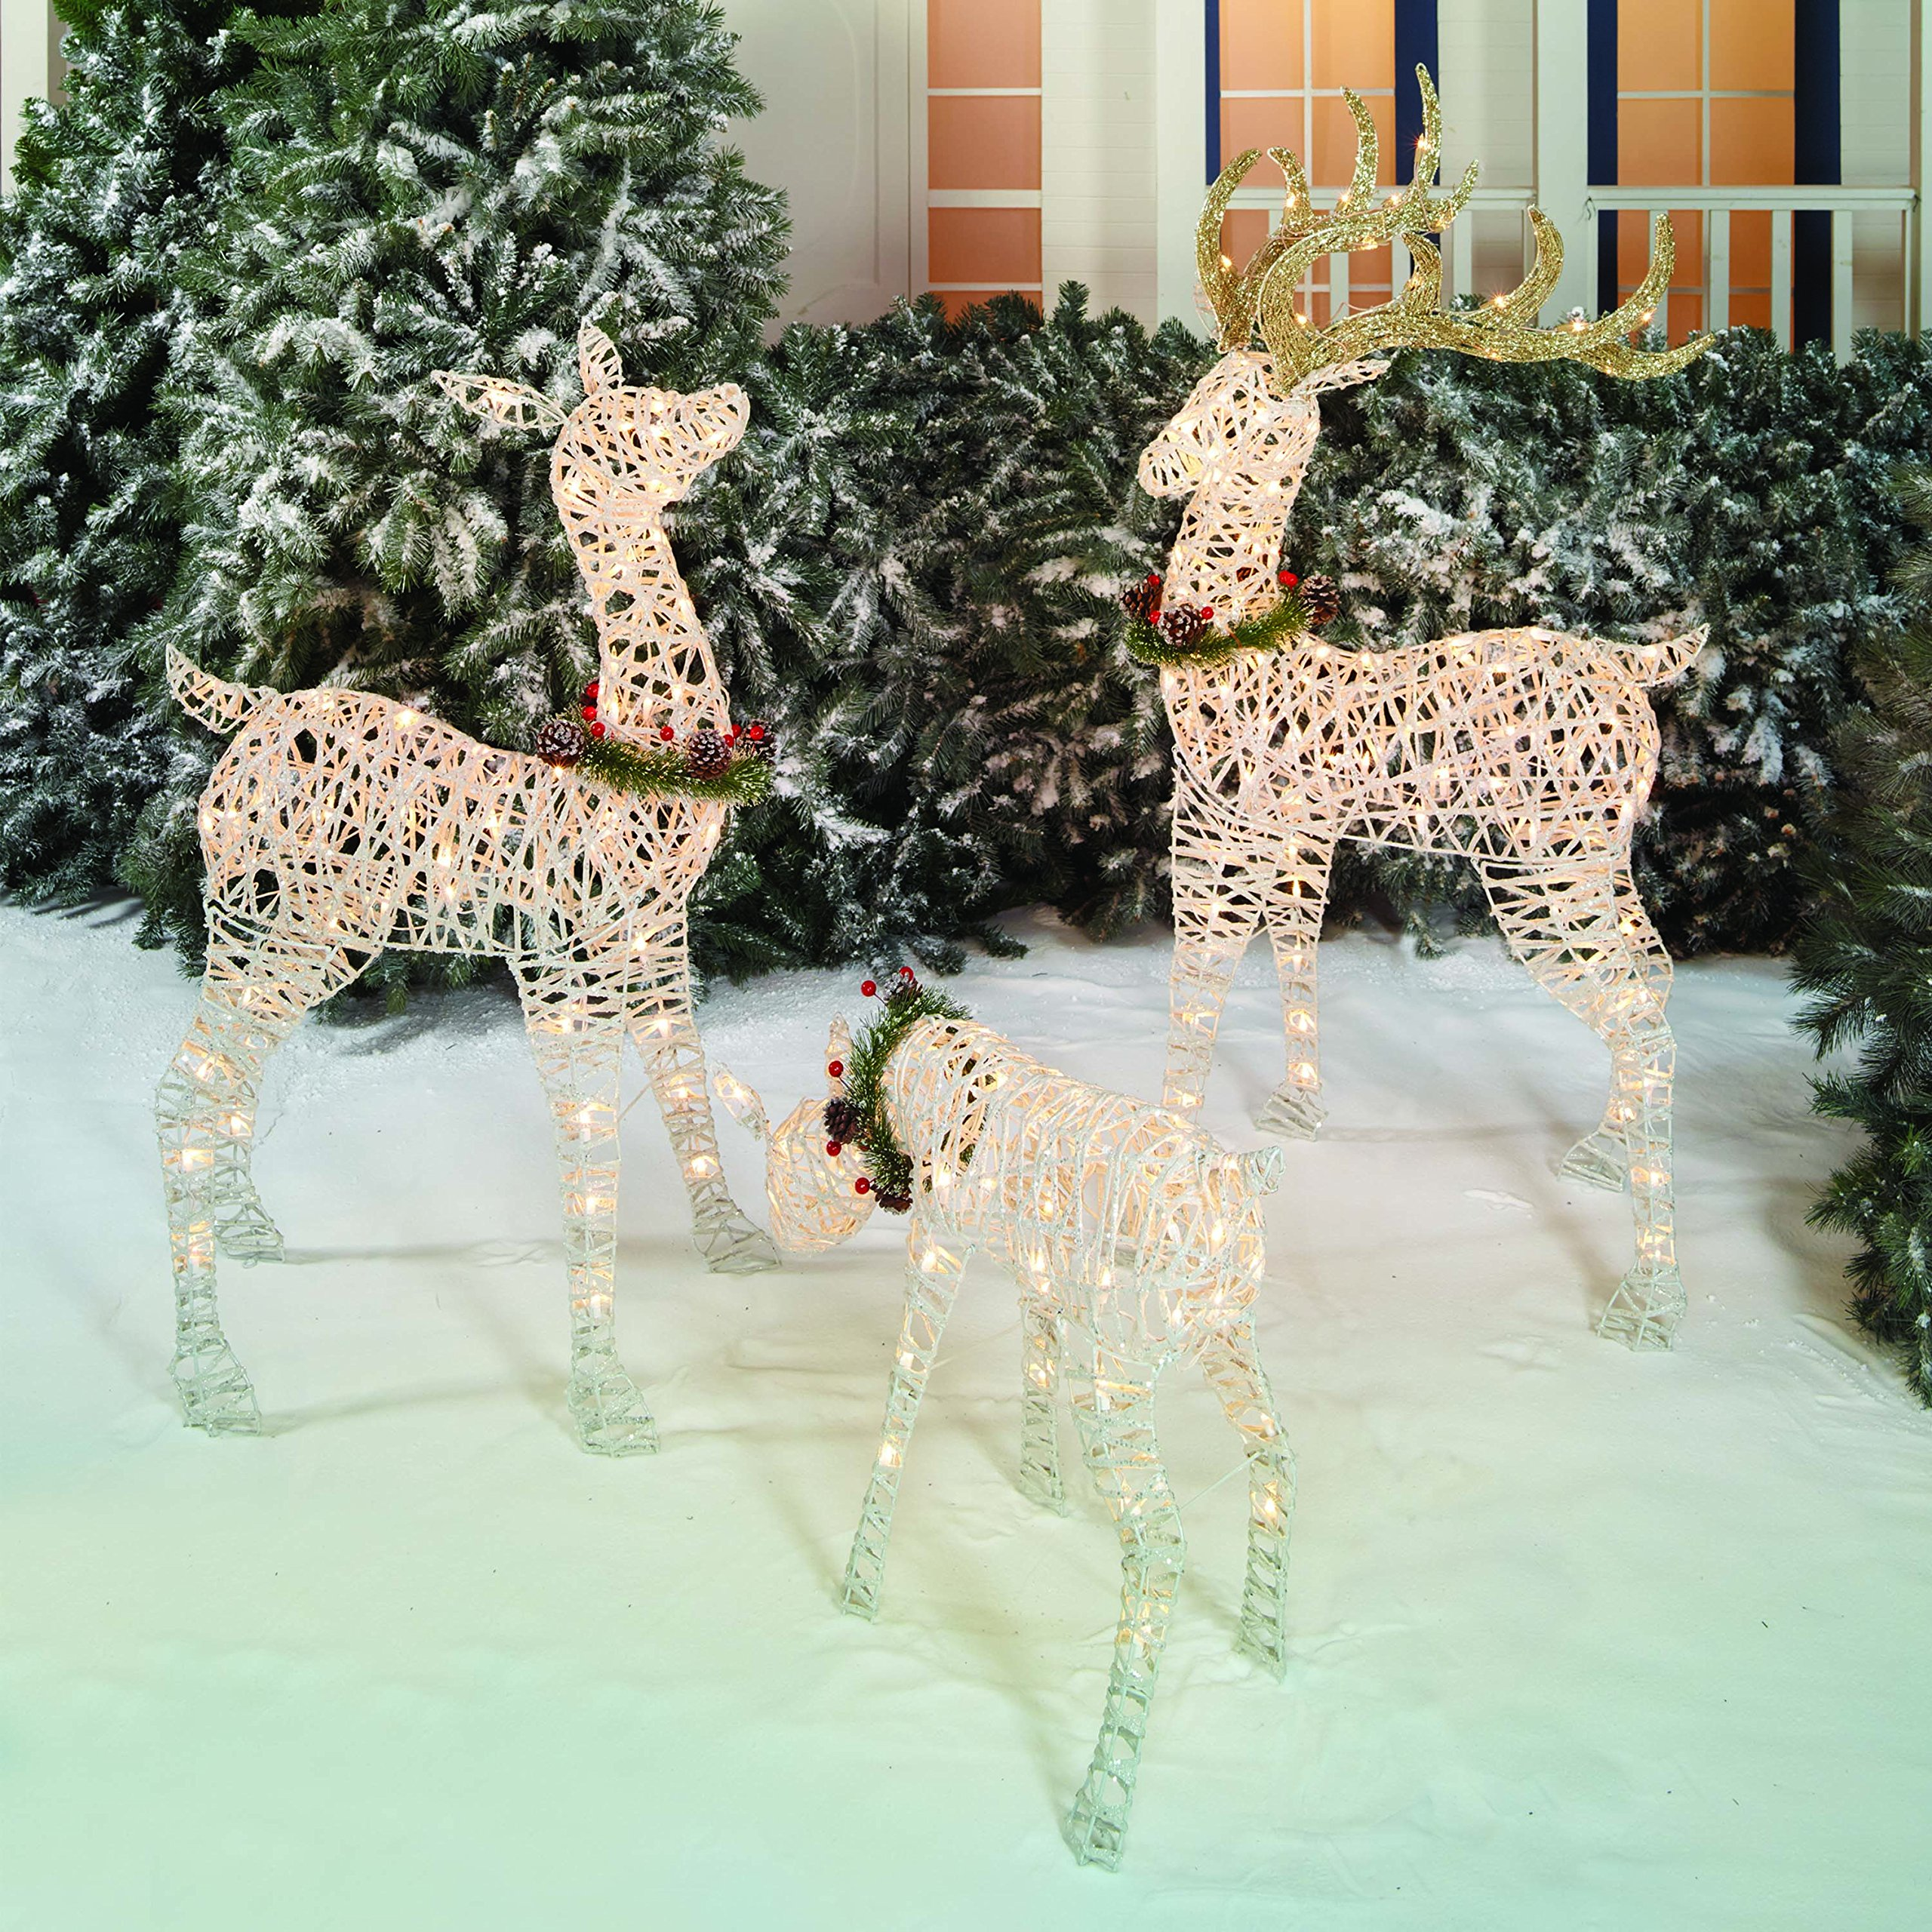 outdoor christmas reindeer family 3 set 220 lights 52 buck 44 doe 28 - Outdoor Christmas Lawn Decorations